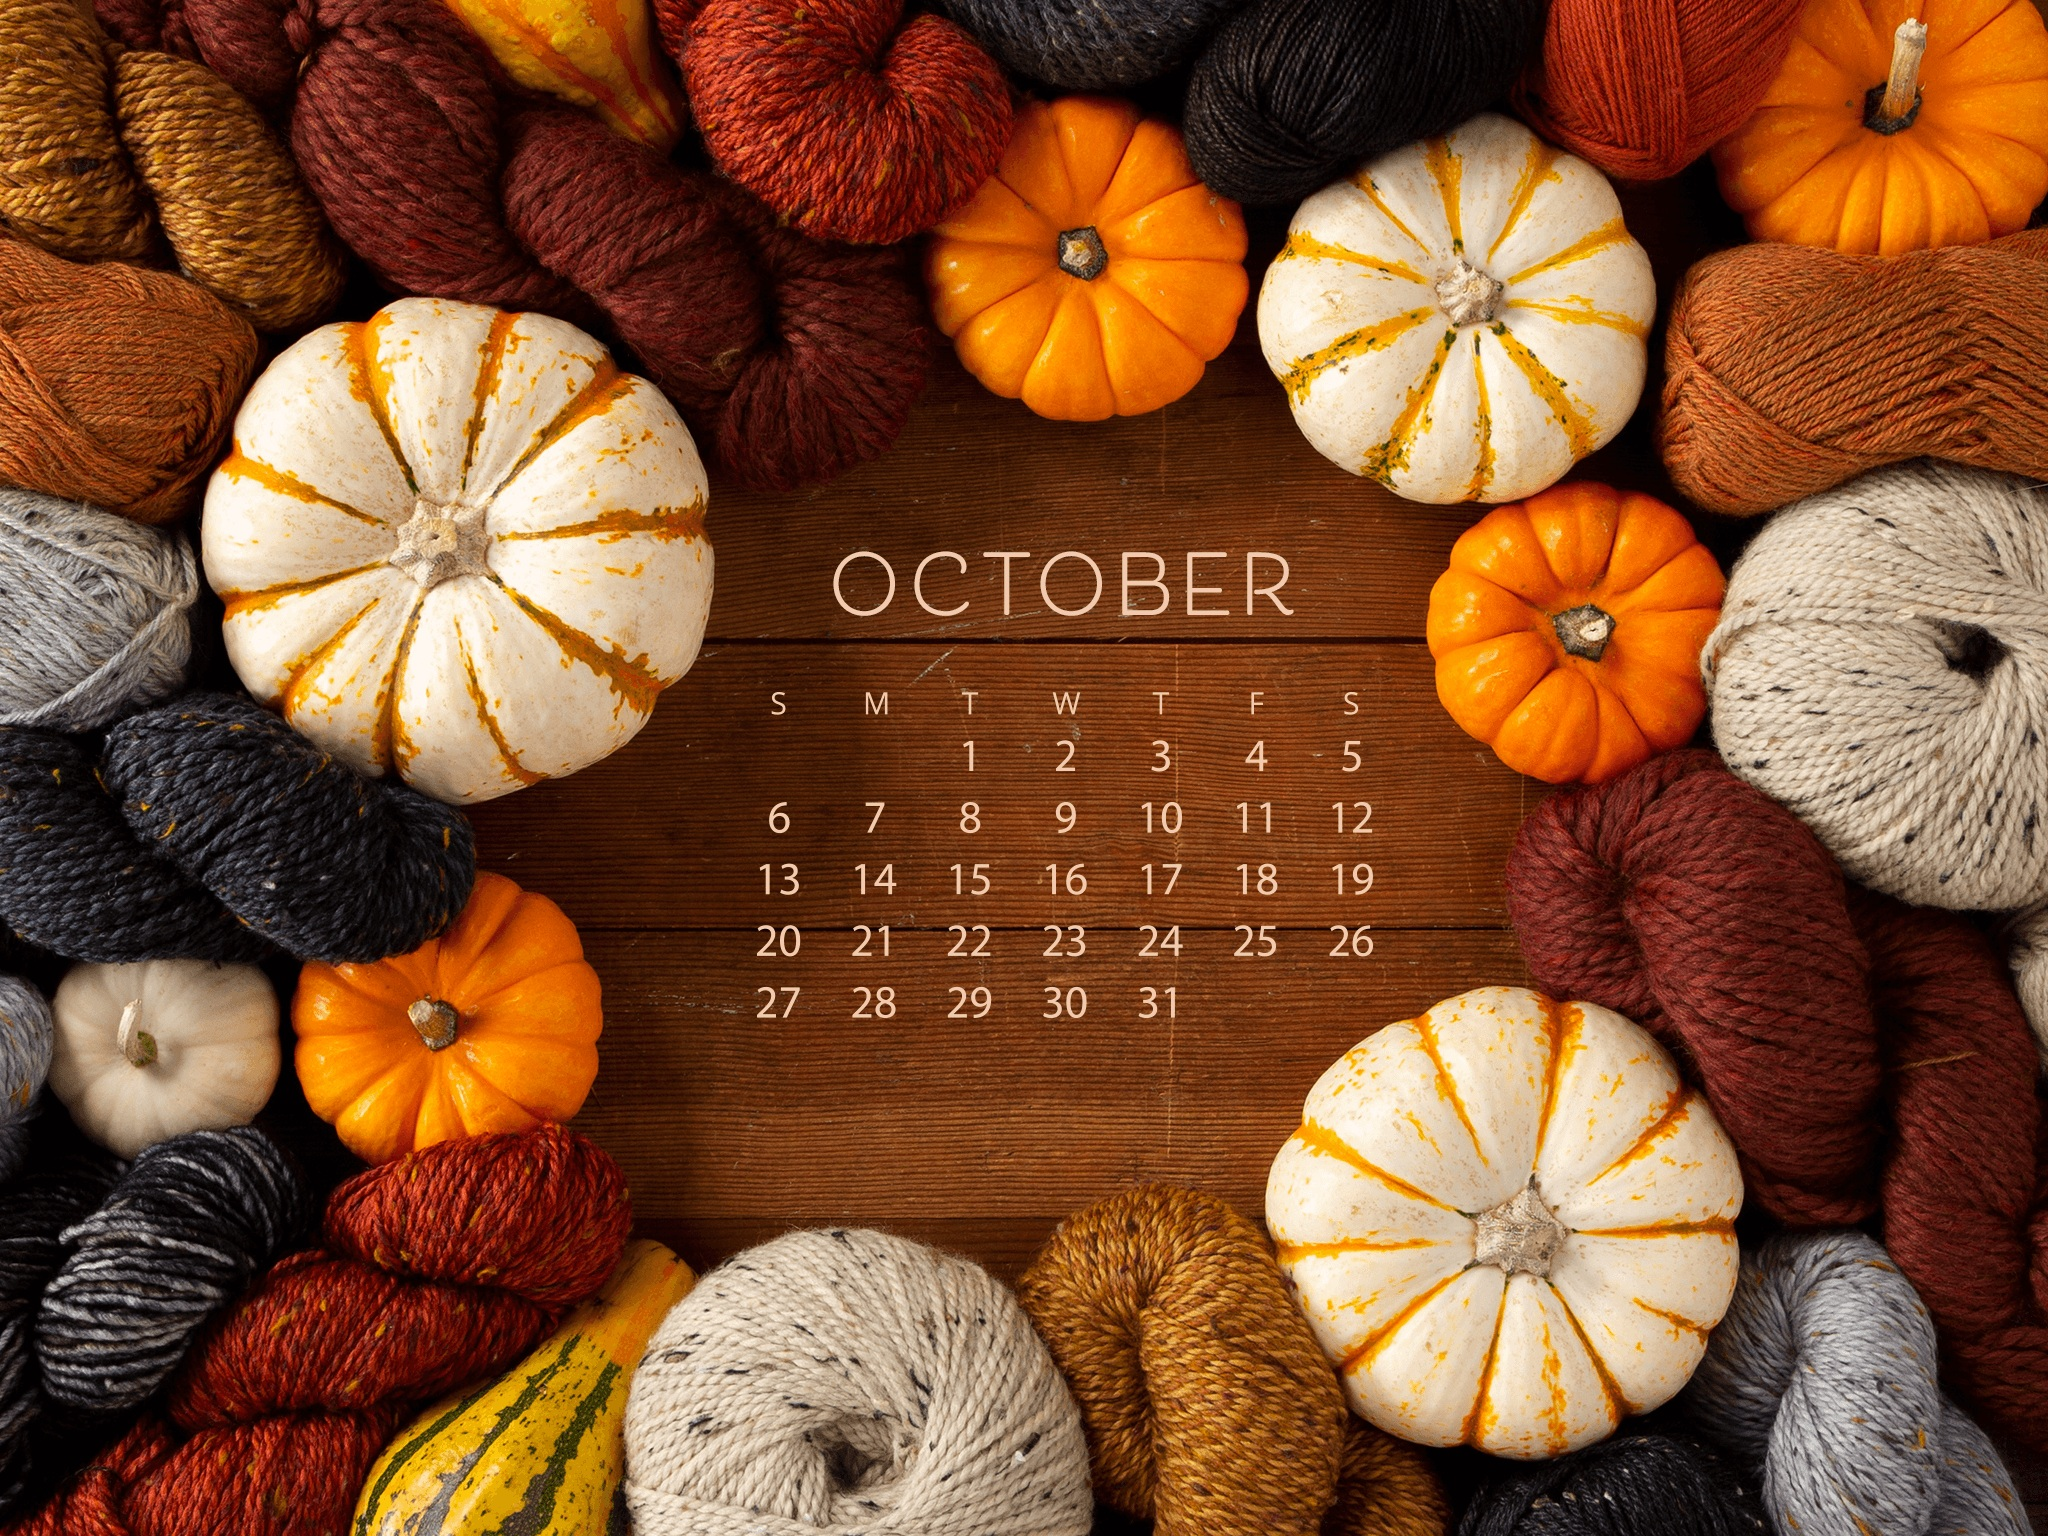 october calendar wallpaper free